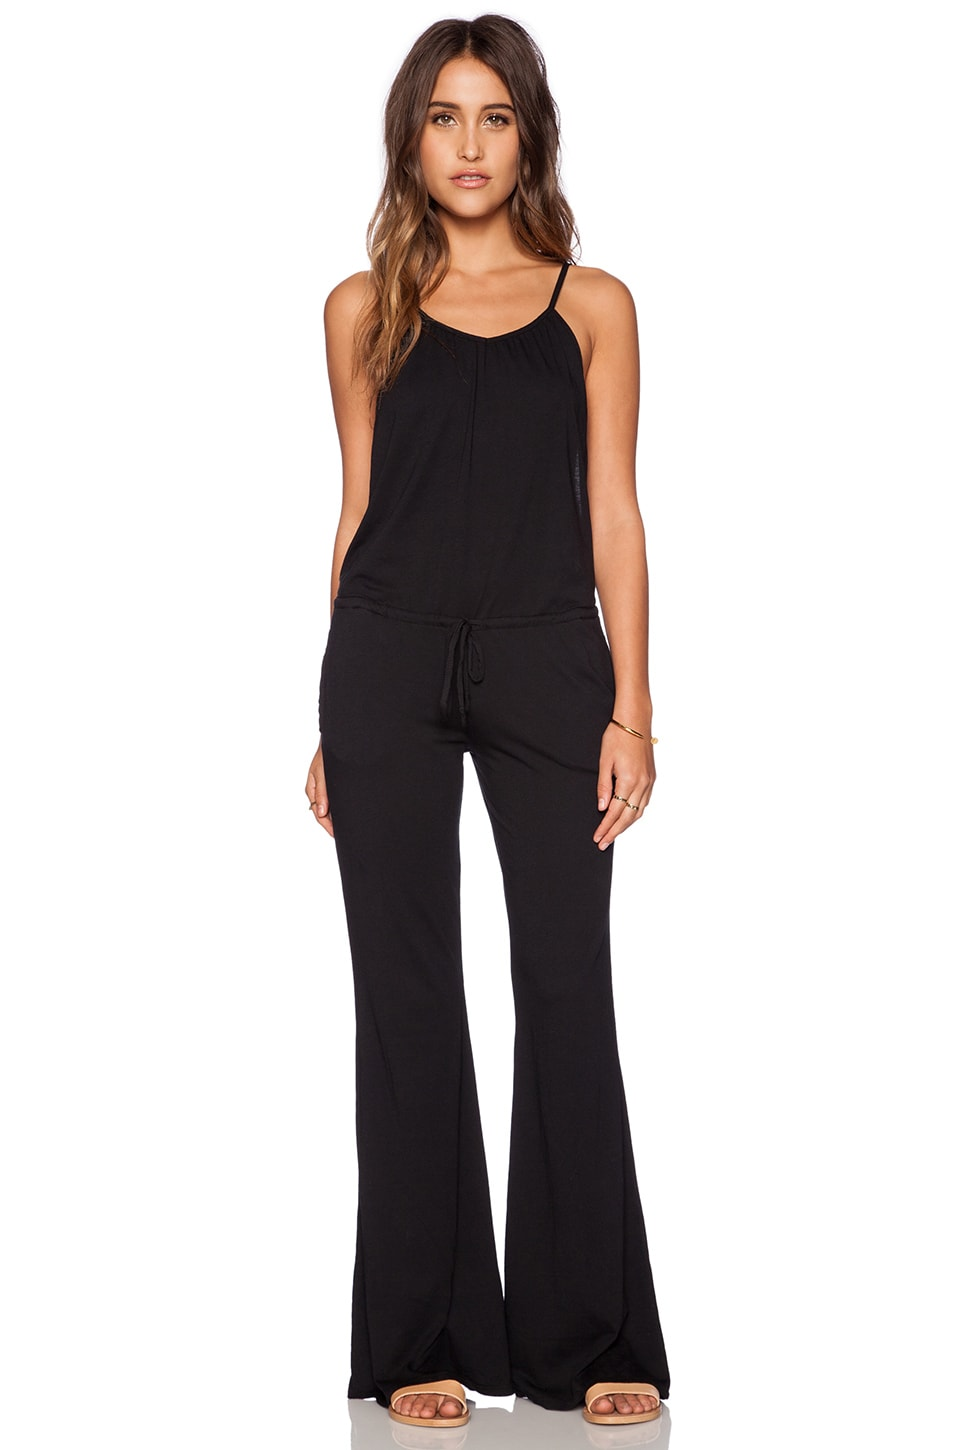 Bobi Modal Jersey Wide Leg Jumpsuit in Black